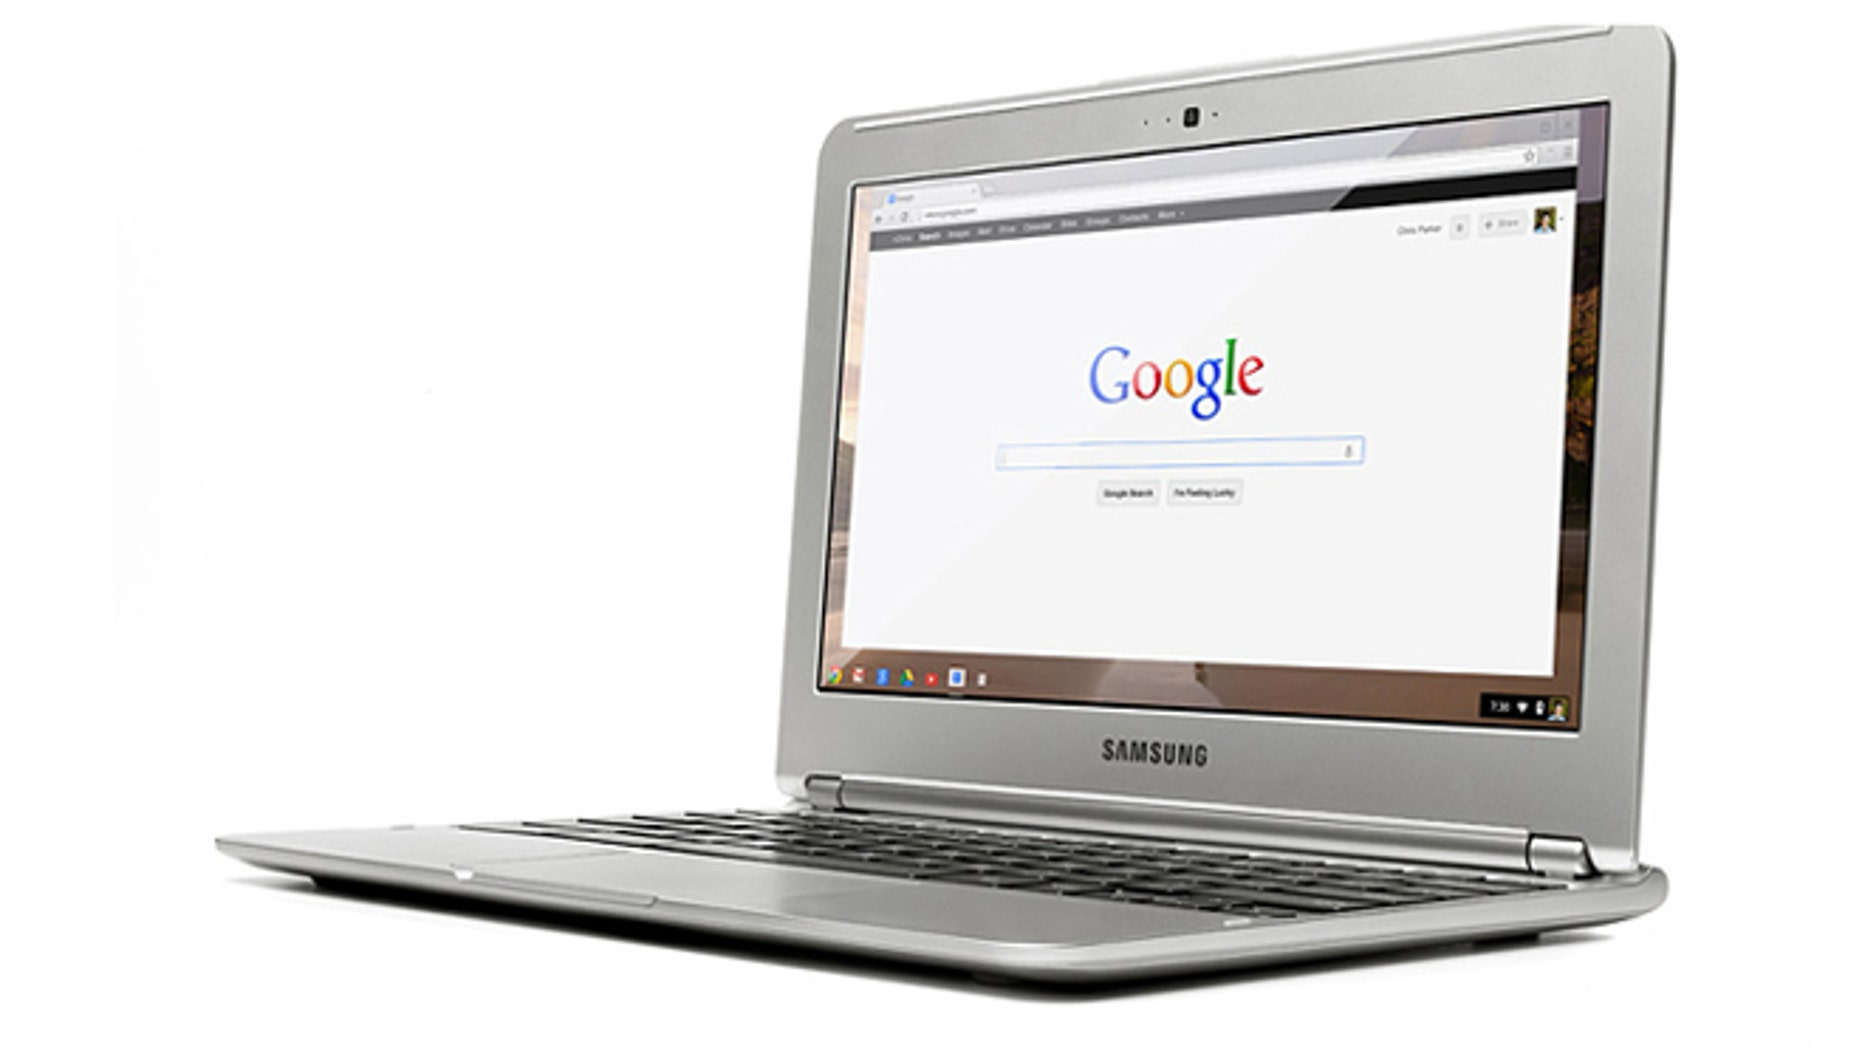 Thanks to cut-rate pricing and high user praise, Google's new Chromebooks have finally struck a nerve with savvy consumers. But they may go unnoticed this holiday as tablets still dominate wishlists.